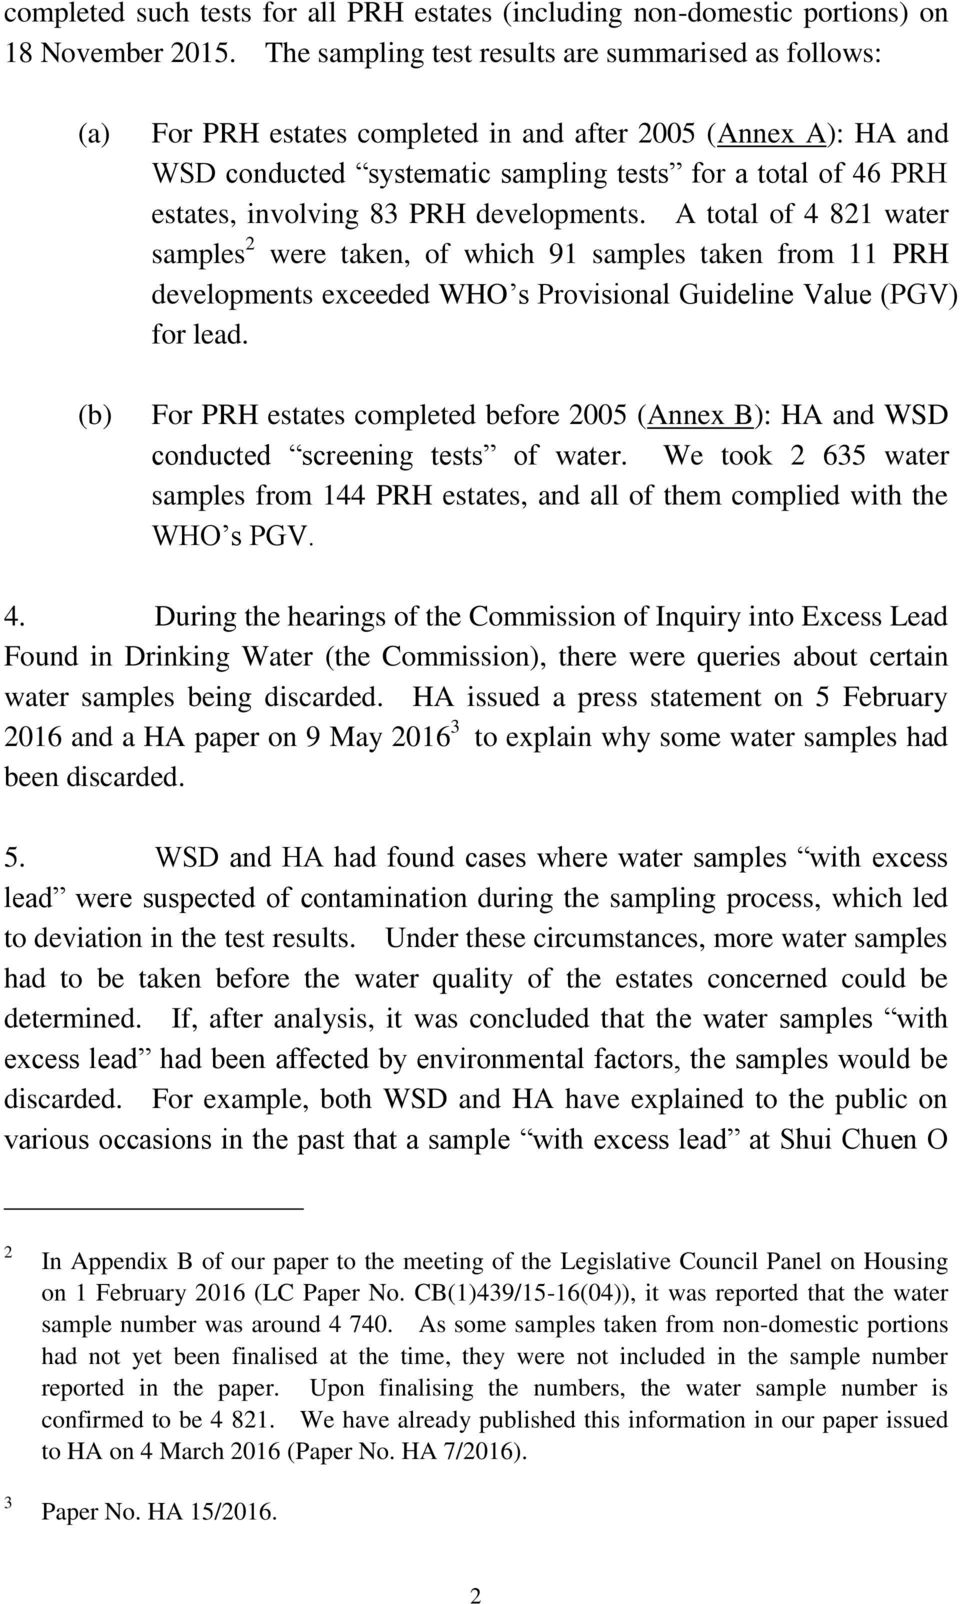 involving 83 PRH developments. A total of 4 821 water samples 2 were taken, of which 91 samples taken from 11 PRH developments exceeded WHO s Provisional Guideline Value (PGV) for lead.